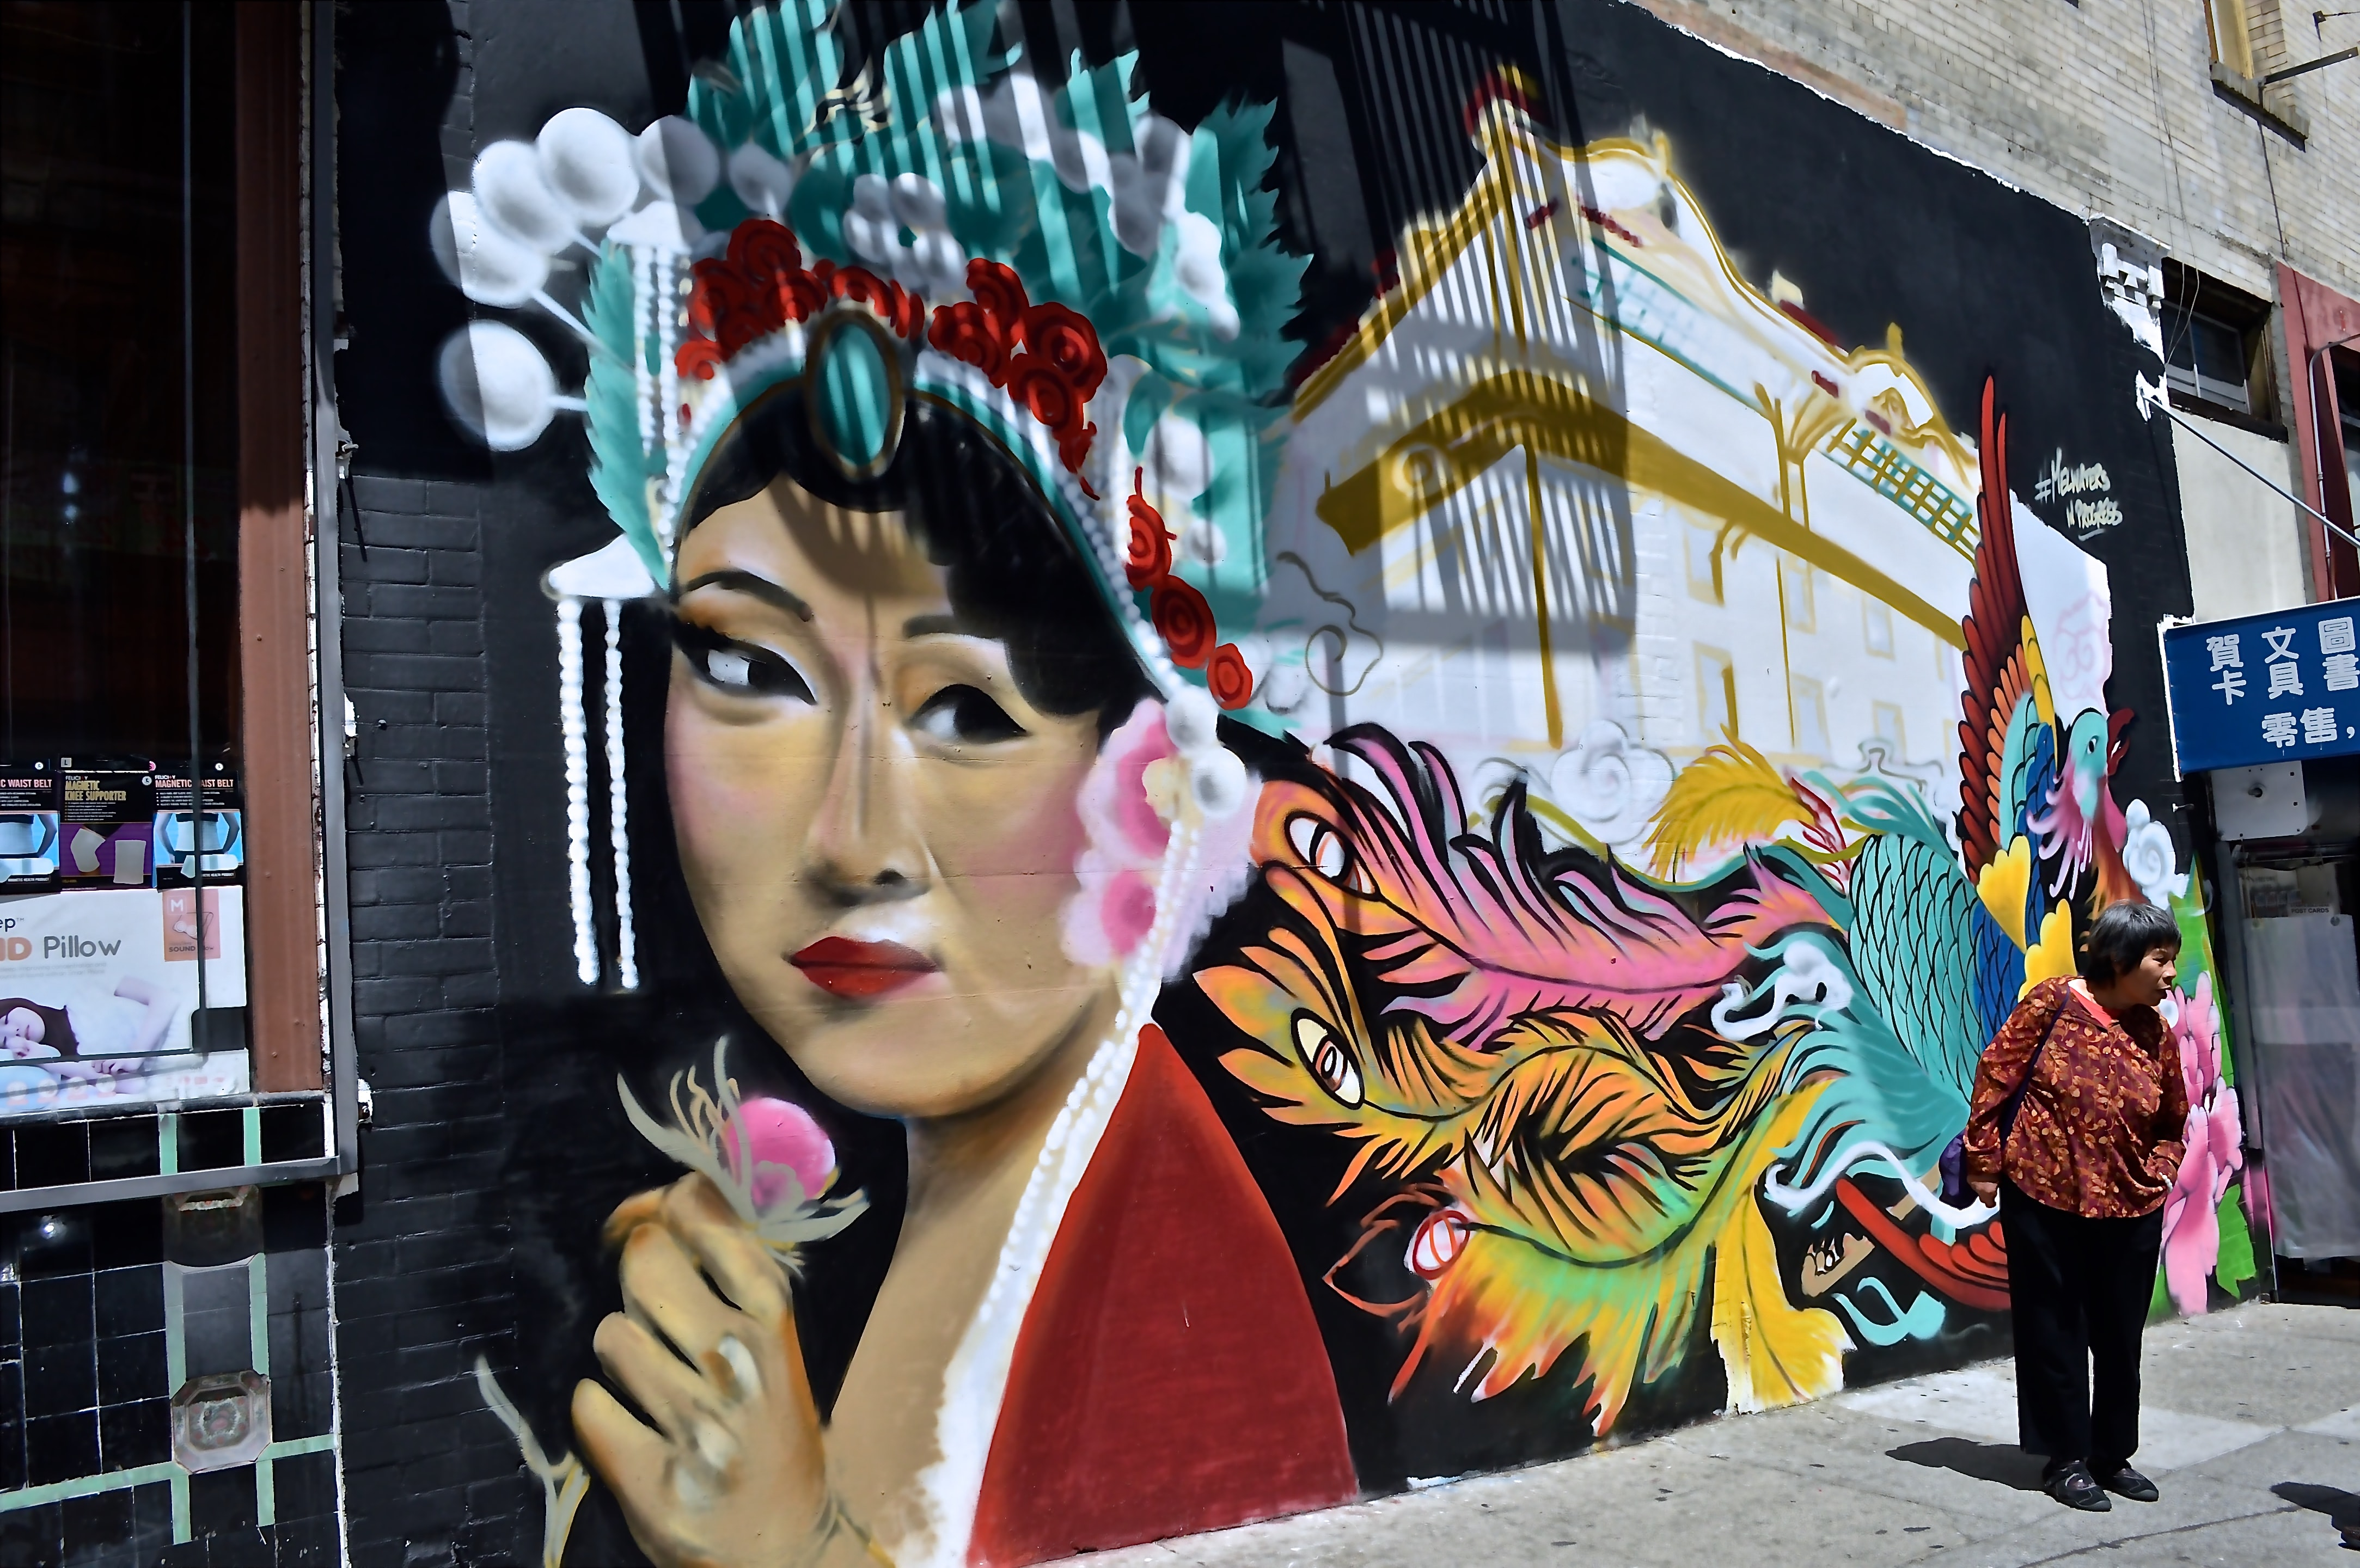 An Asian woman holding a flower, painted on a wall.